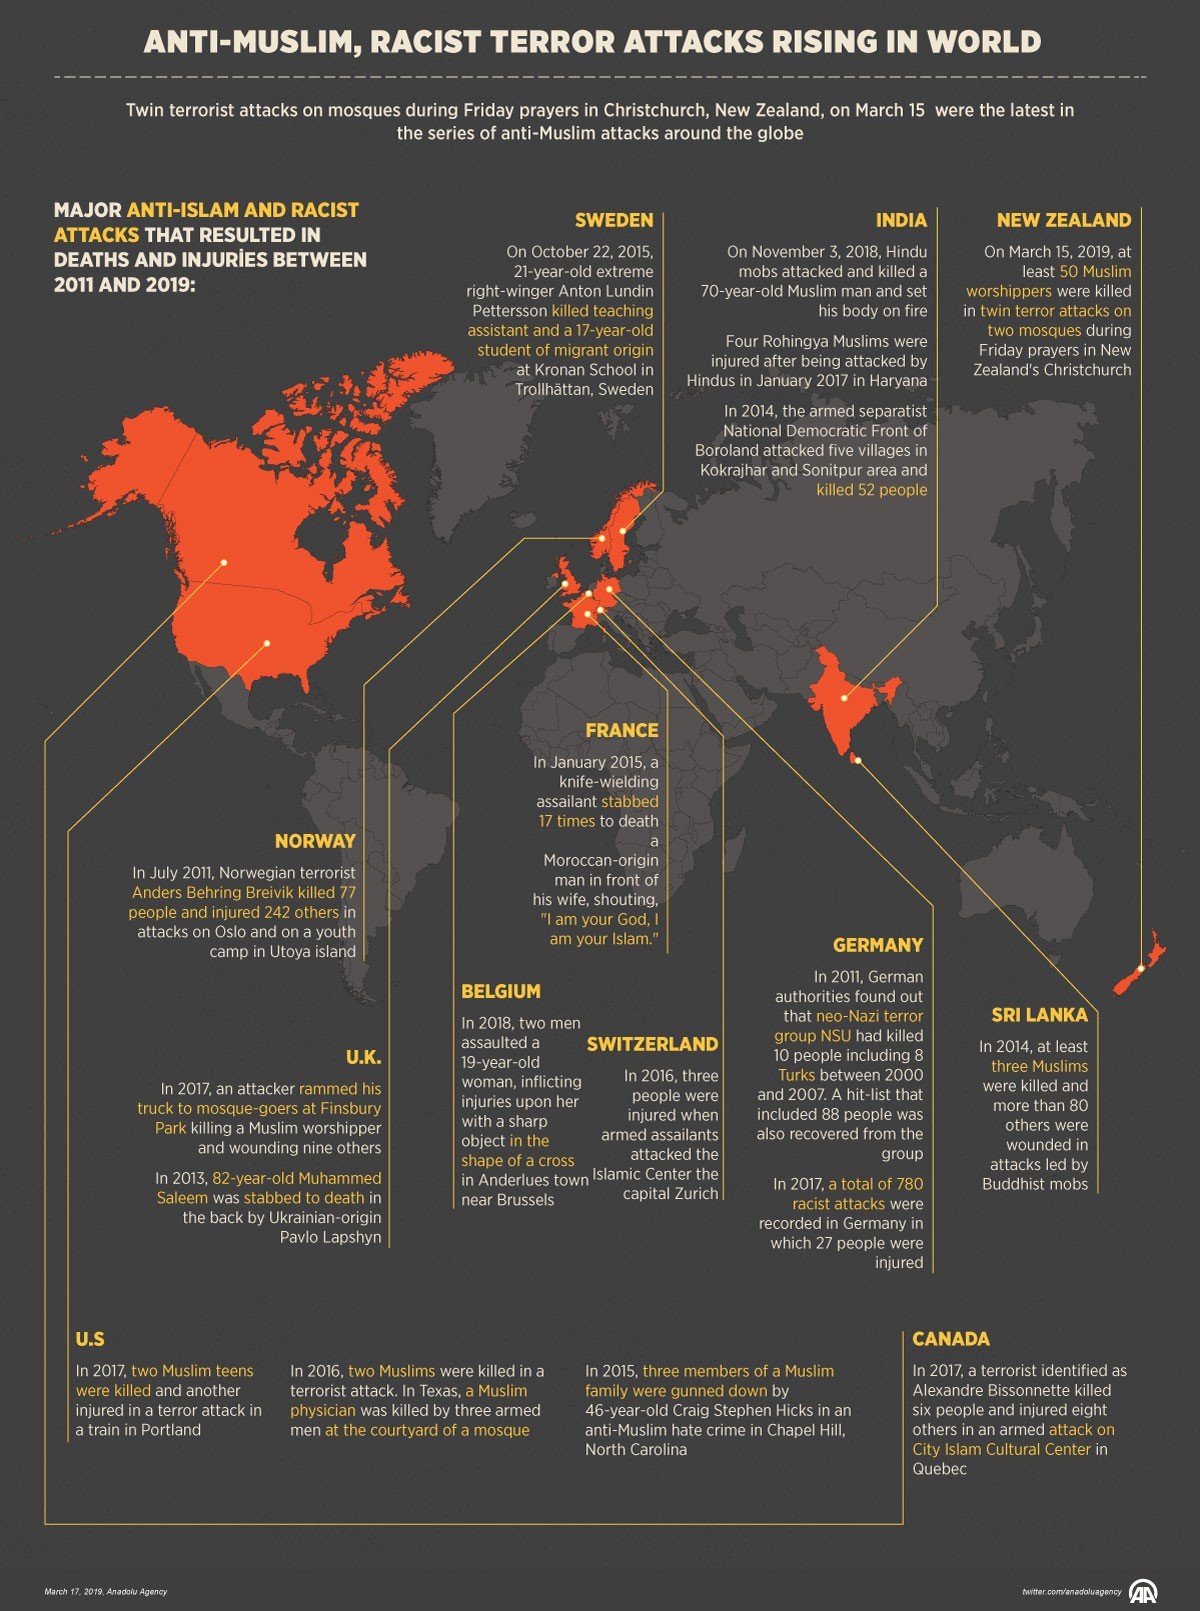 "ANKARA, TURKEY - MARCH 19: An infographic titled ""Anti-Muslim, racist terror attacks rising worldwide"" created on March 19, 2019 in Ankara, Turkey. Twin terrorist attacks on mosques during Friday prayers in Christchurch, New Zealand, on March 15 were the latest in the series of anti-Muslim attacks around the globe. (Photo by Murat Usubaliev/Anadolu Agency/Getty Images)"